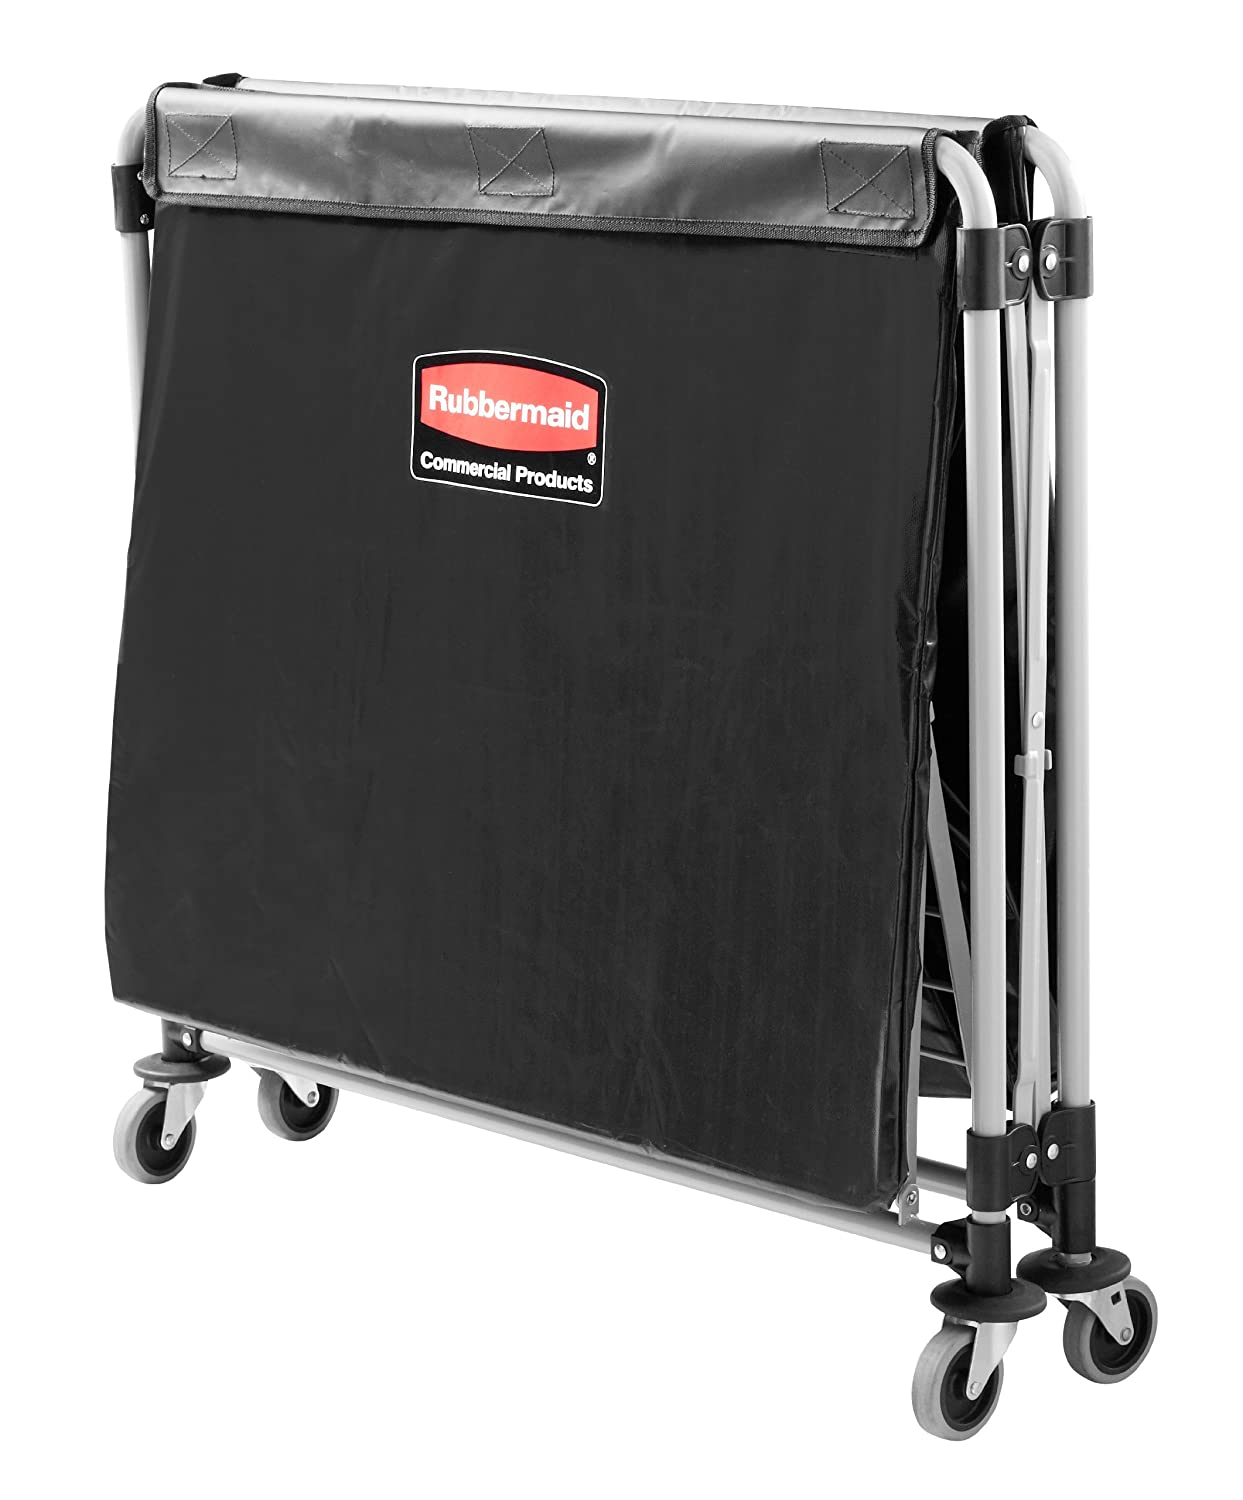 Rubbermaid Commercial Products 1871646 Bolsa para 300 L, Negro: Amazon.es: Industria, empresas y ciencia